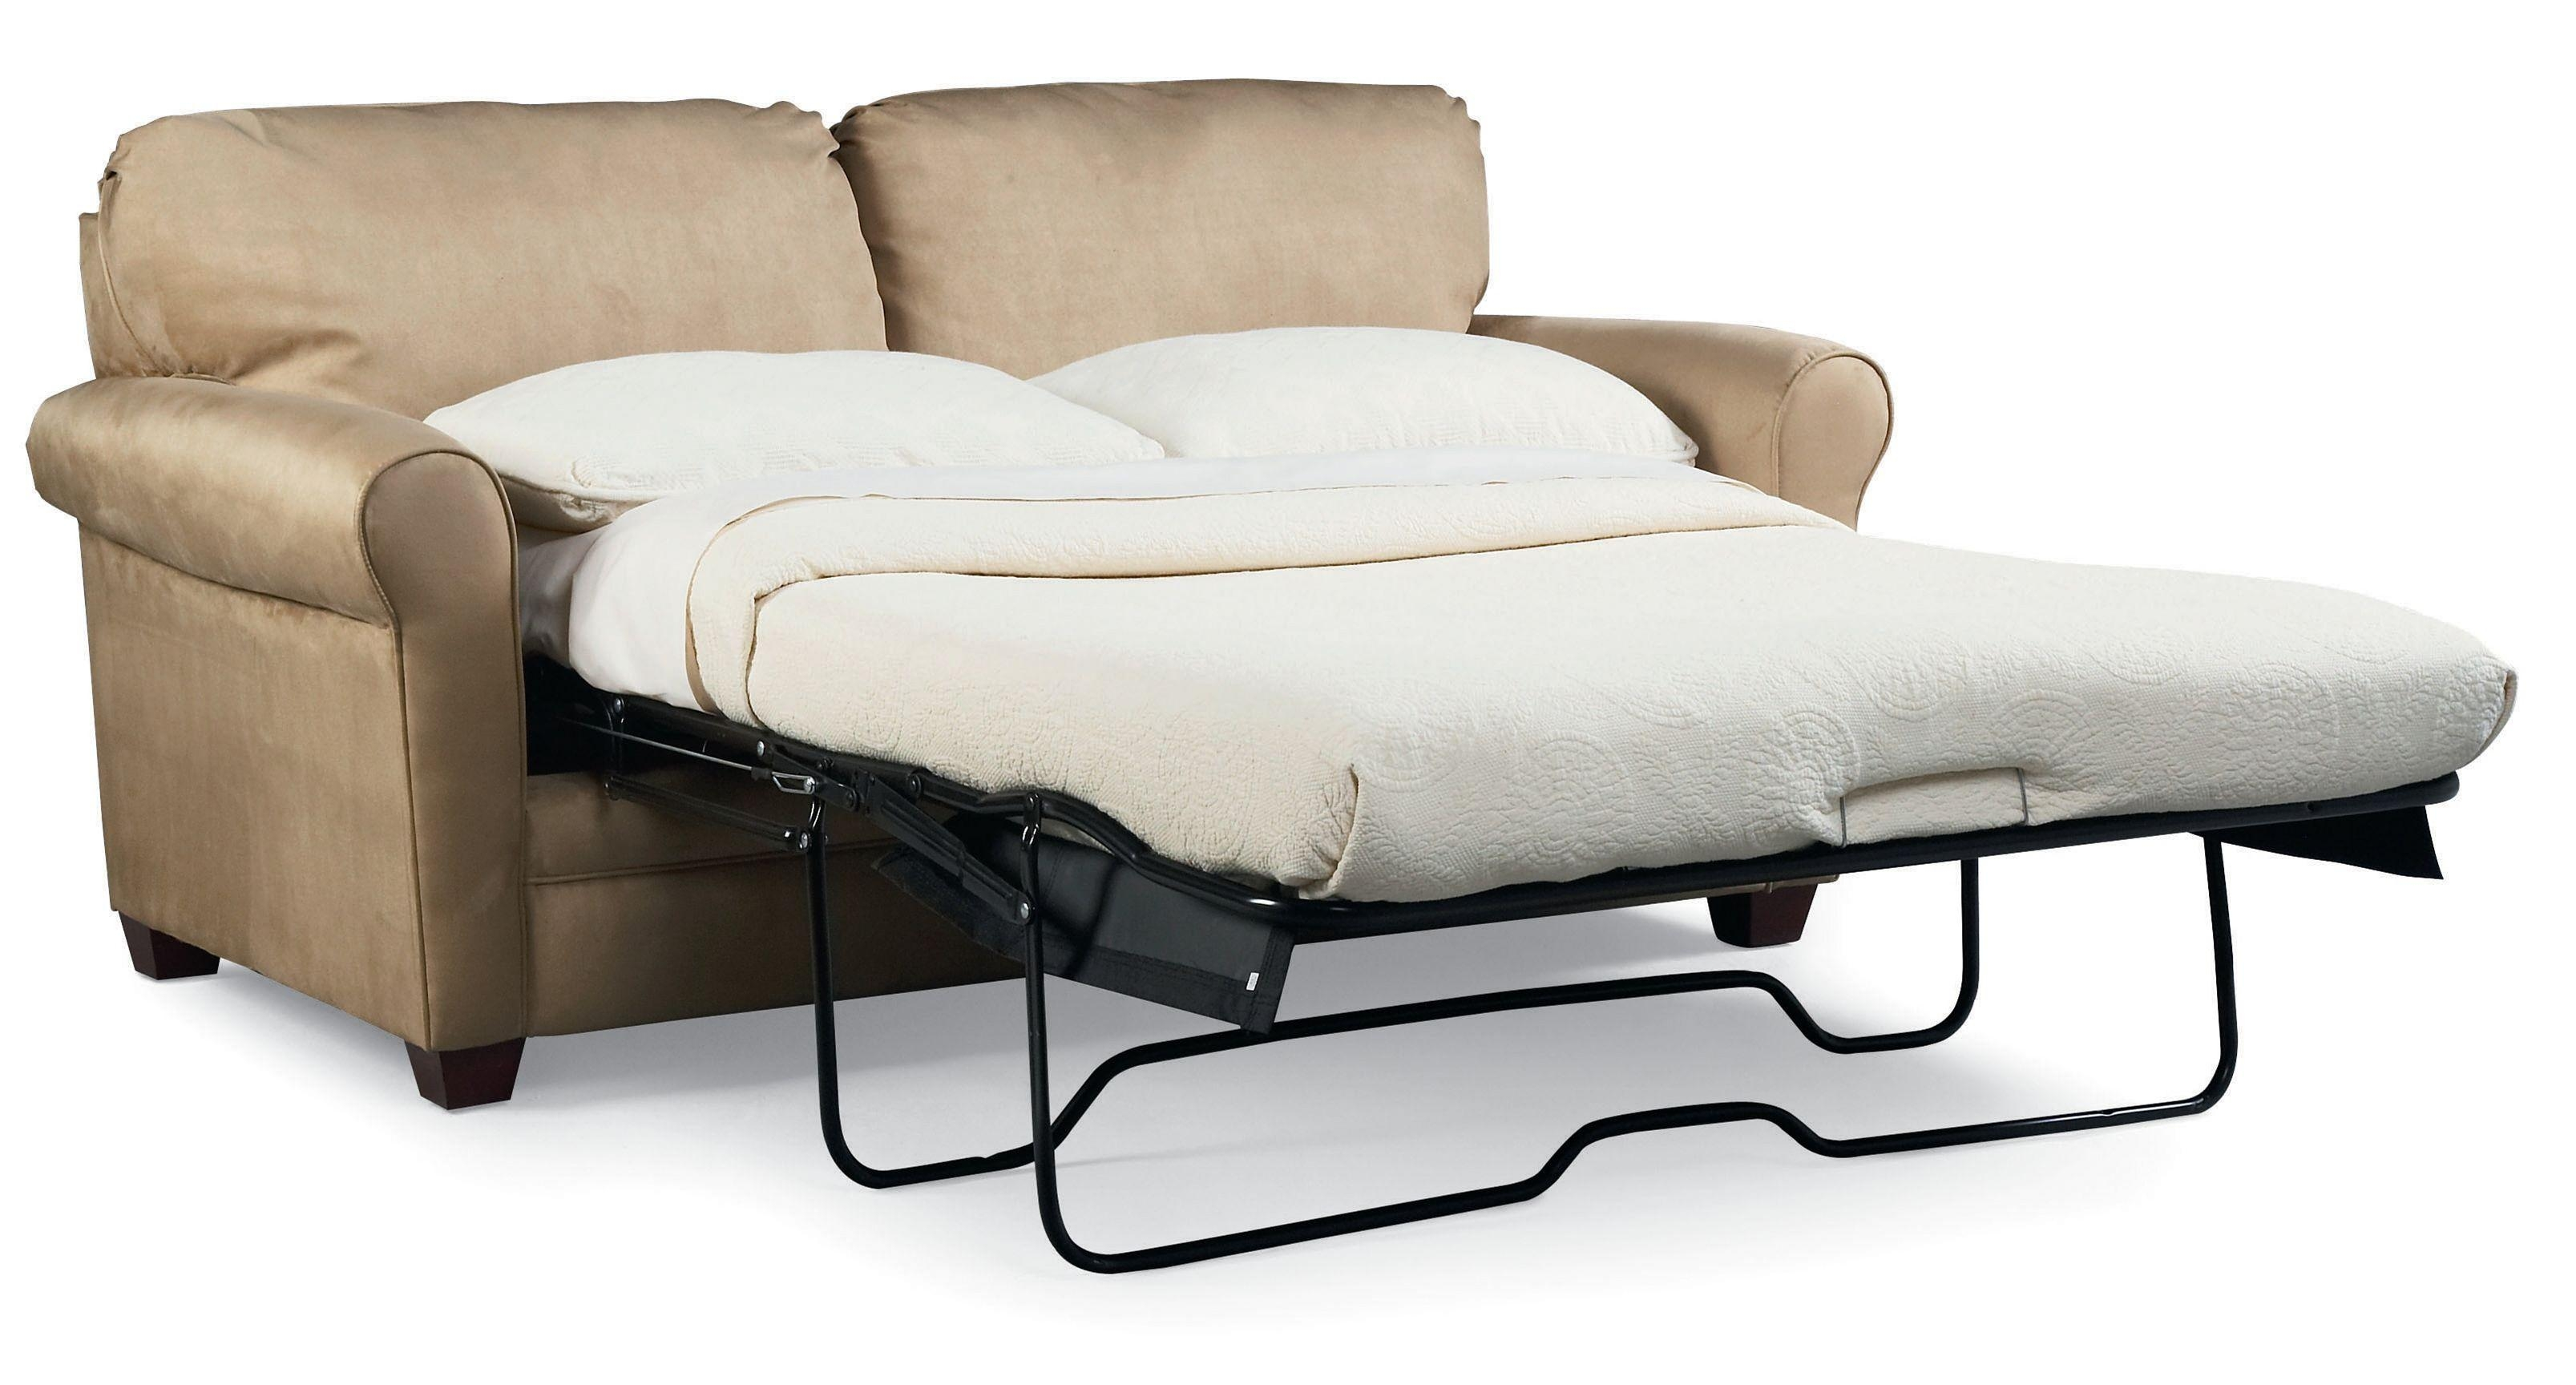 Furniture Home: Great Full Sofa Sleeper Sale For Your Art Van In Full Size Sofa Sleepers (Image 8 of 21)